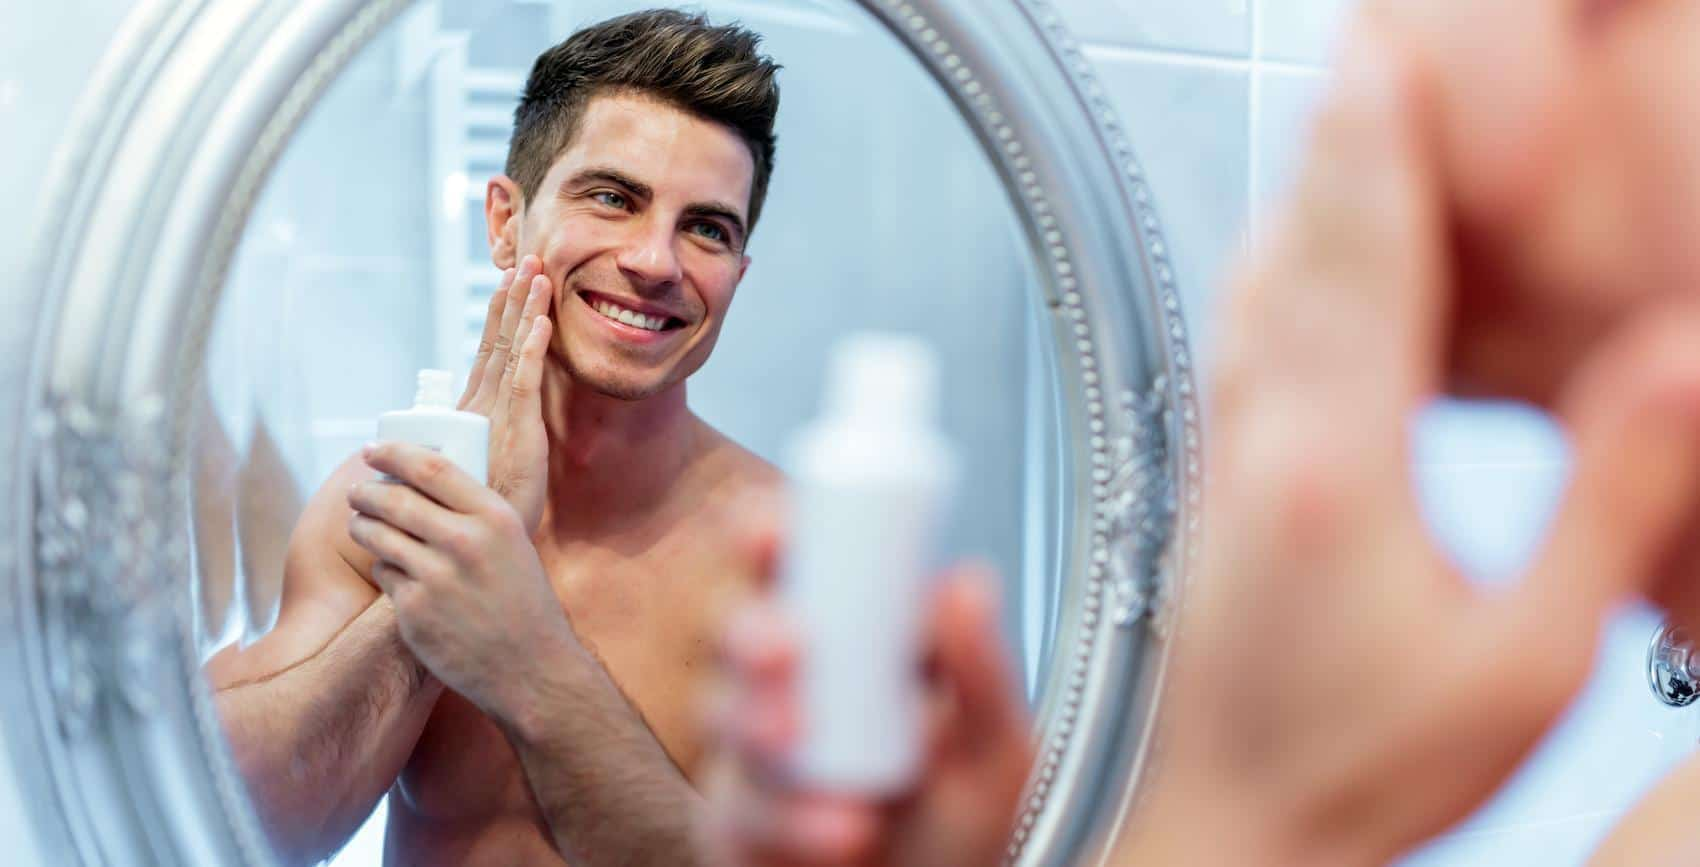 5 Skincare Tips for Men